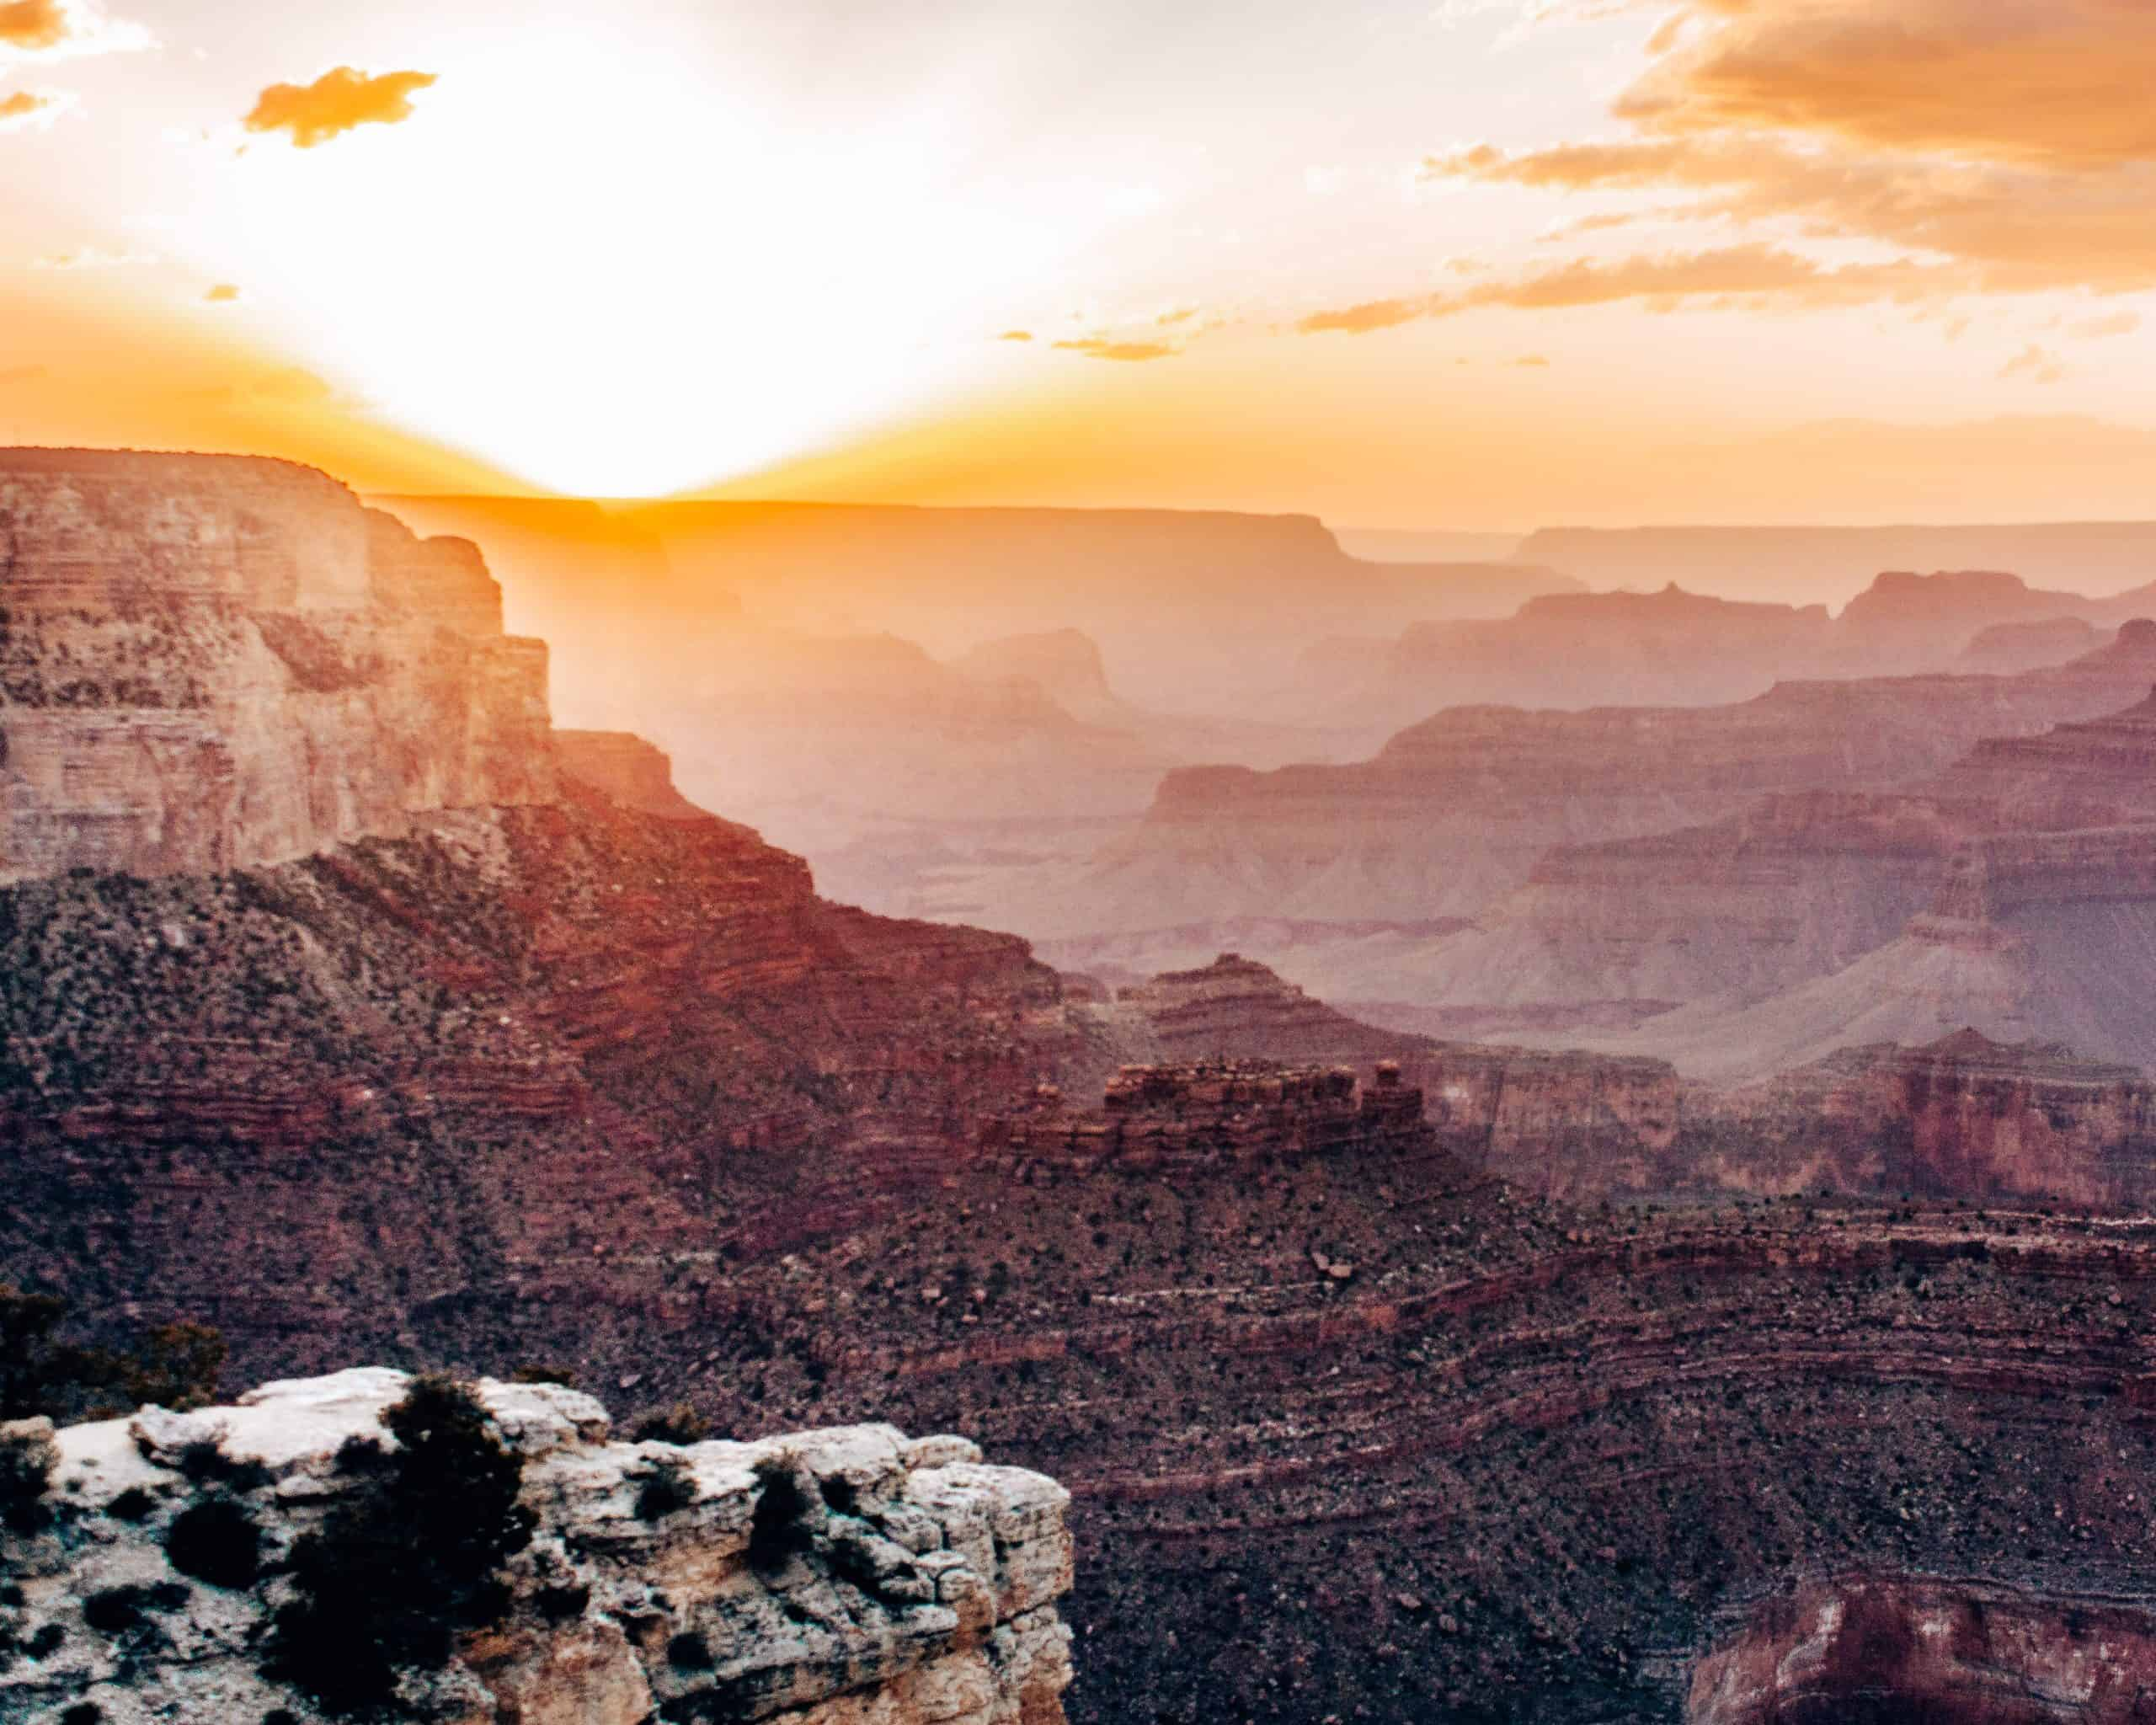 Sun Setting over the Grand Canyon South Rim in Arizona